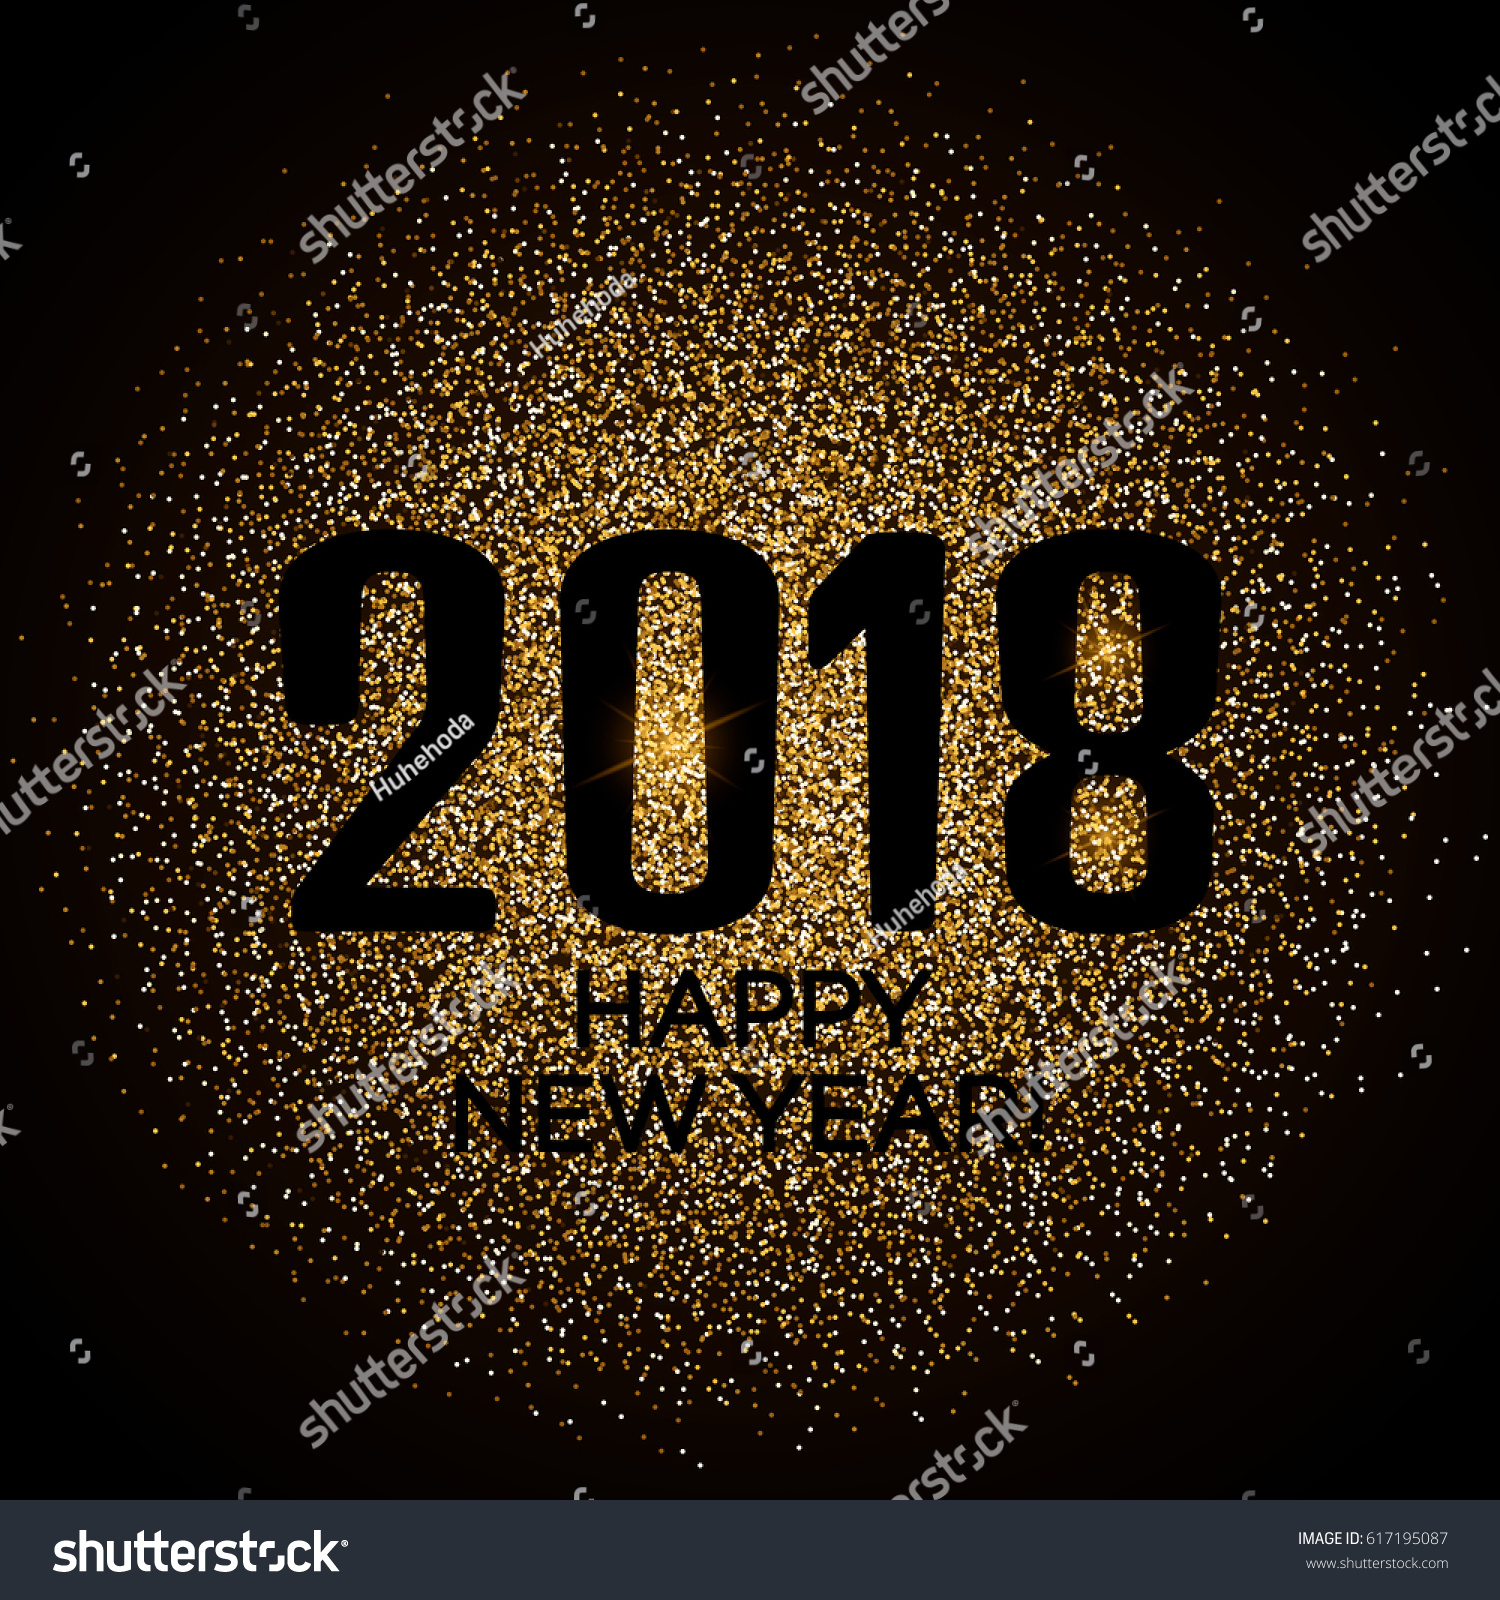 happy new year 2018 gold glitter new year background for banner flyer poster sign